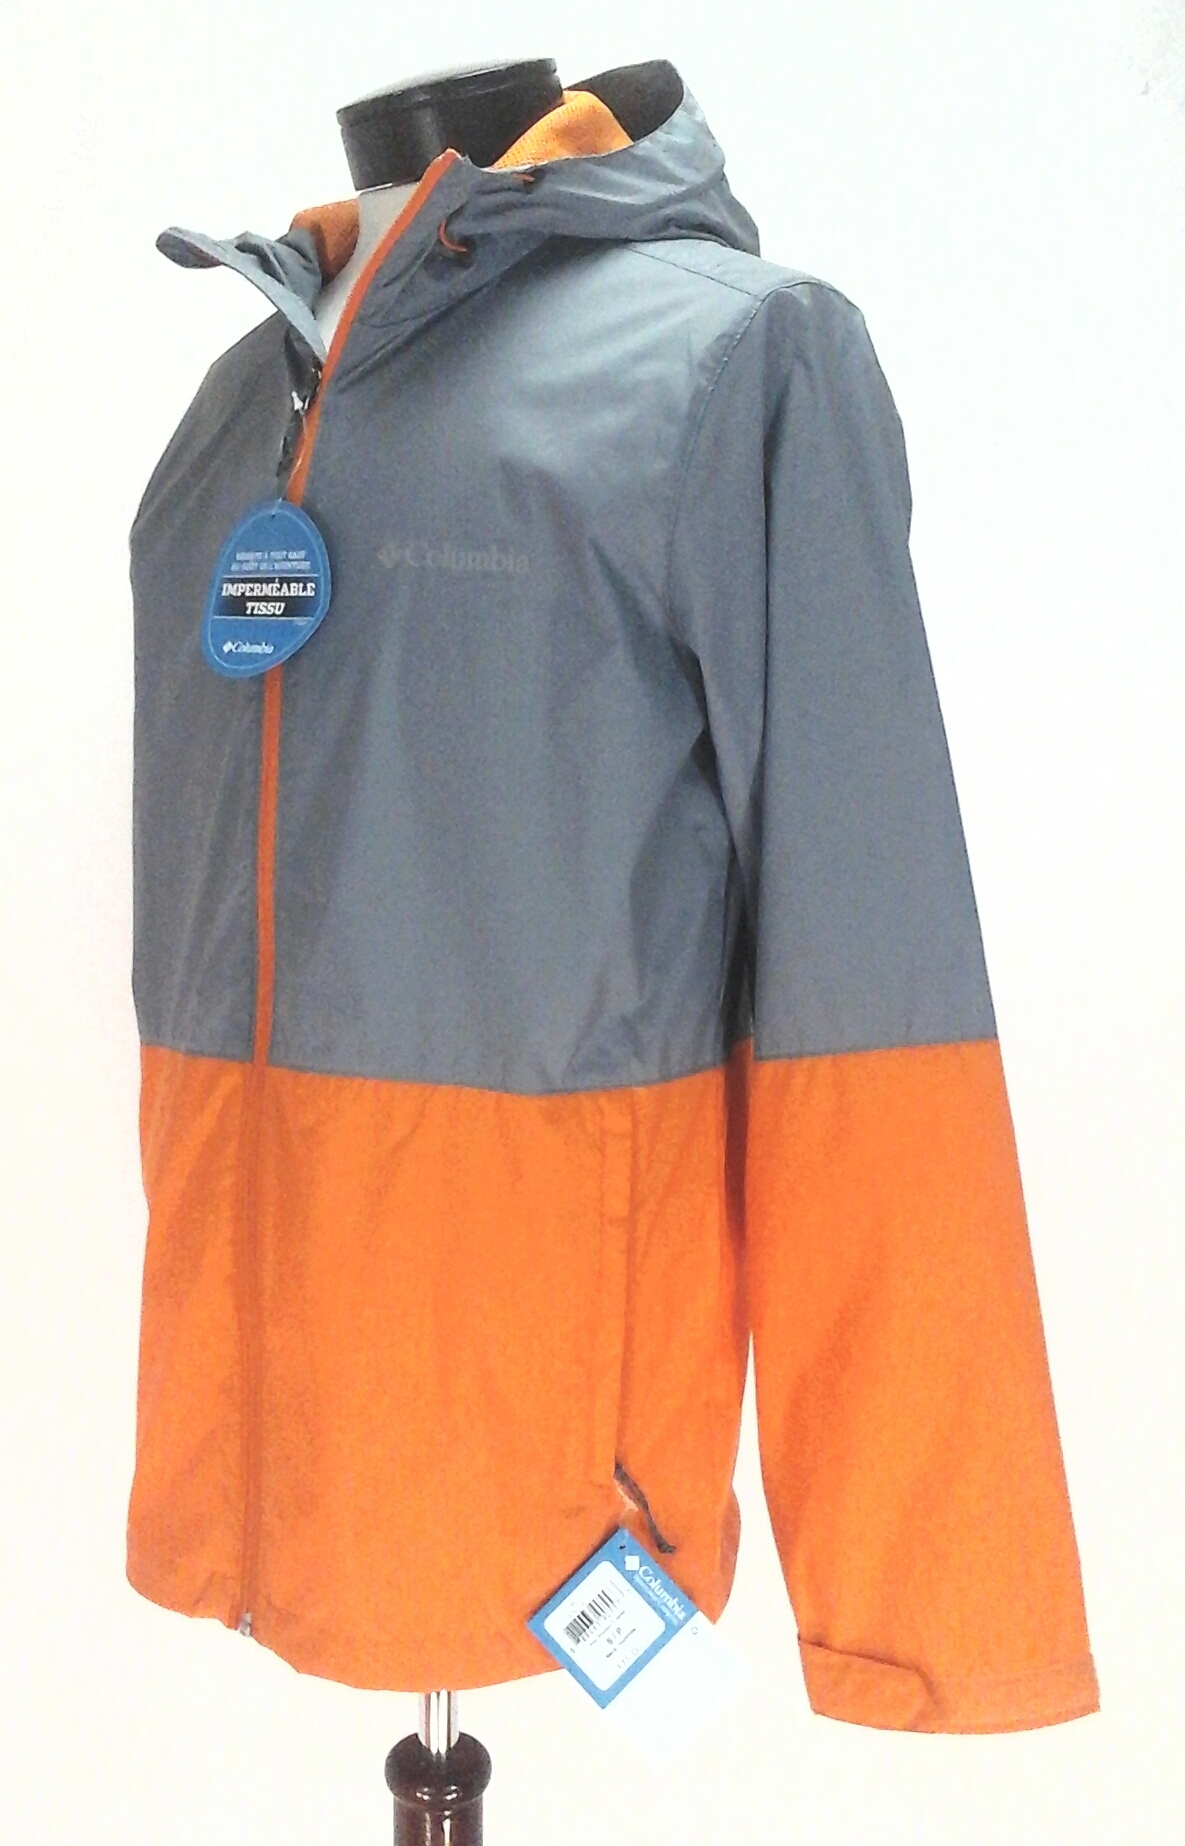 factory outlets best site how to find Details about COLUMBIA Rain Jacket Roan Mountain Hooded WATERPROOF  Gray/Orange Mens S $75